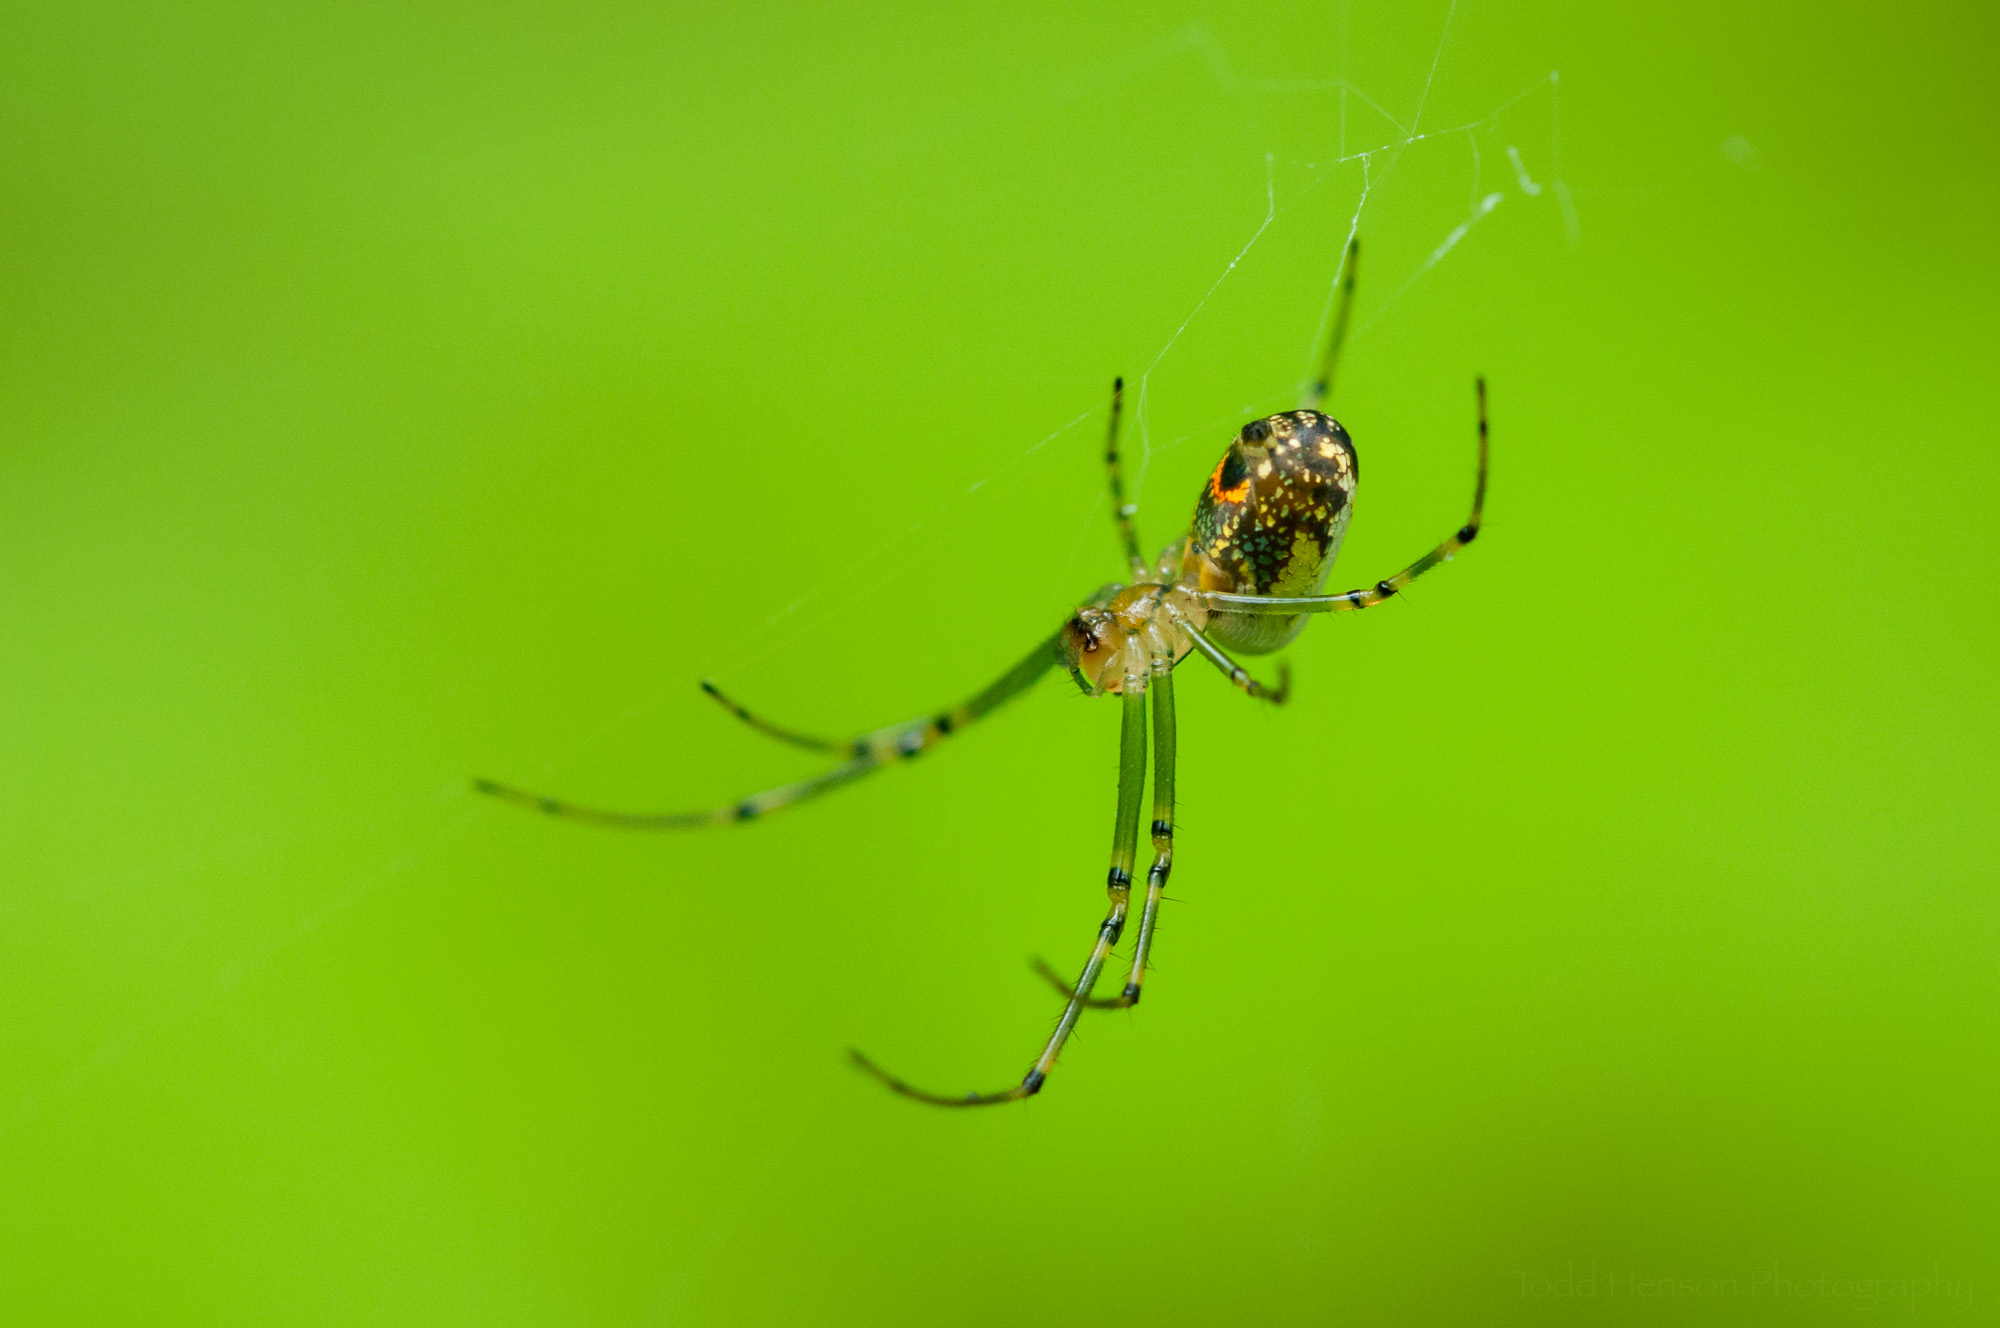 Orchard Spider in its web.